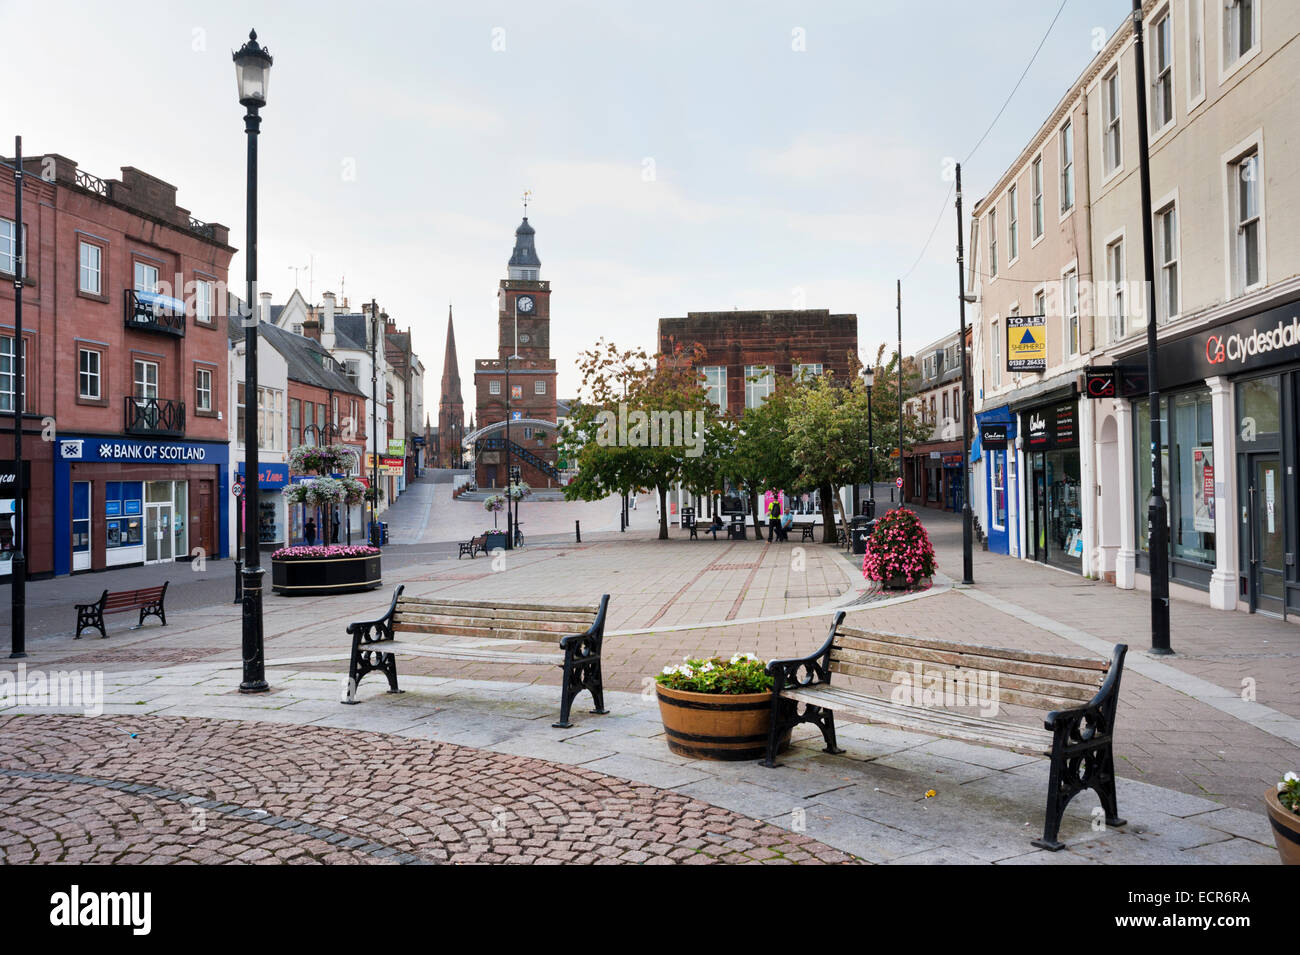 High Street, in the town centre, Dumfries, Scotland, UK Stock Photo